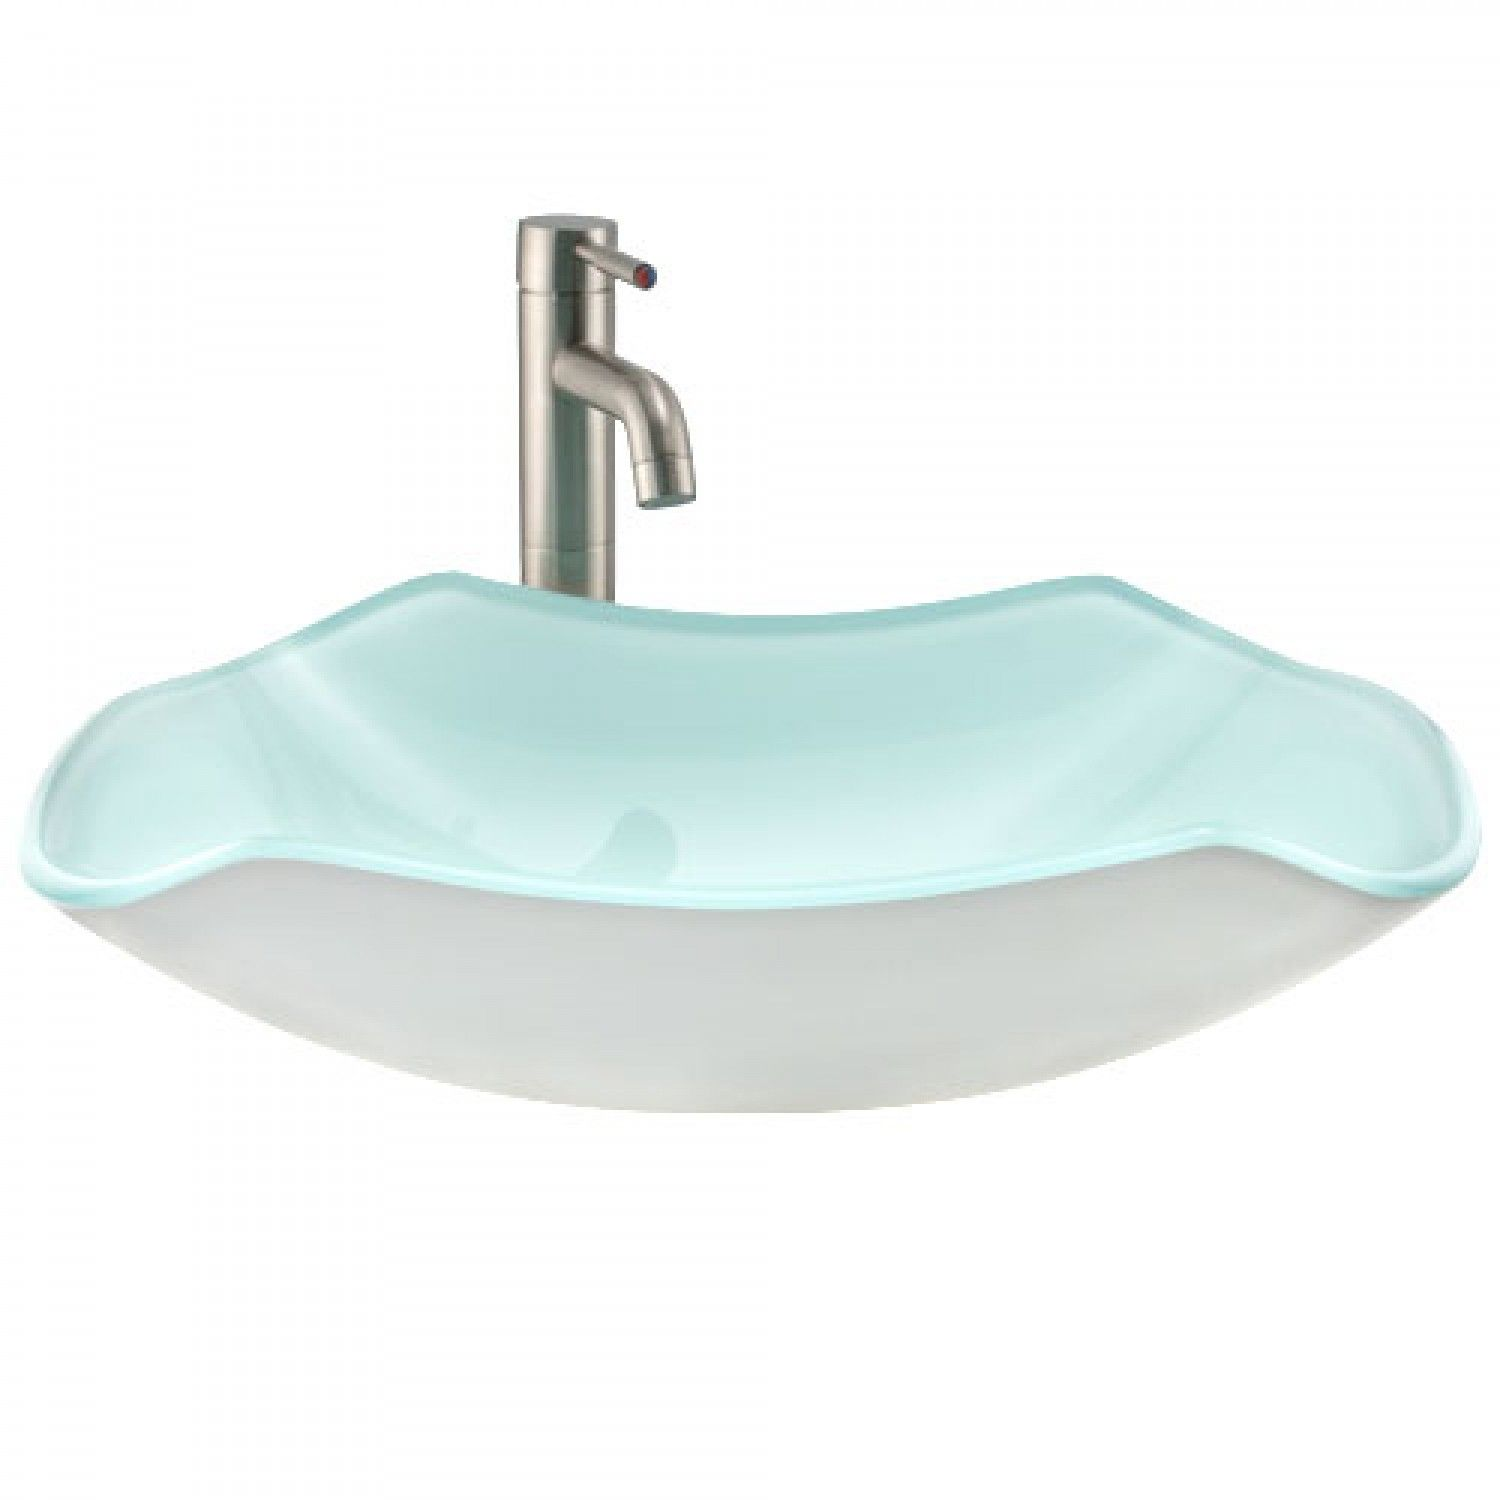 Rectangular Seafoam Green Glass Vessel Sink Bathroom Sinks